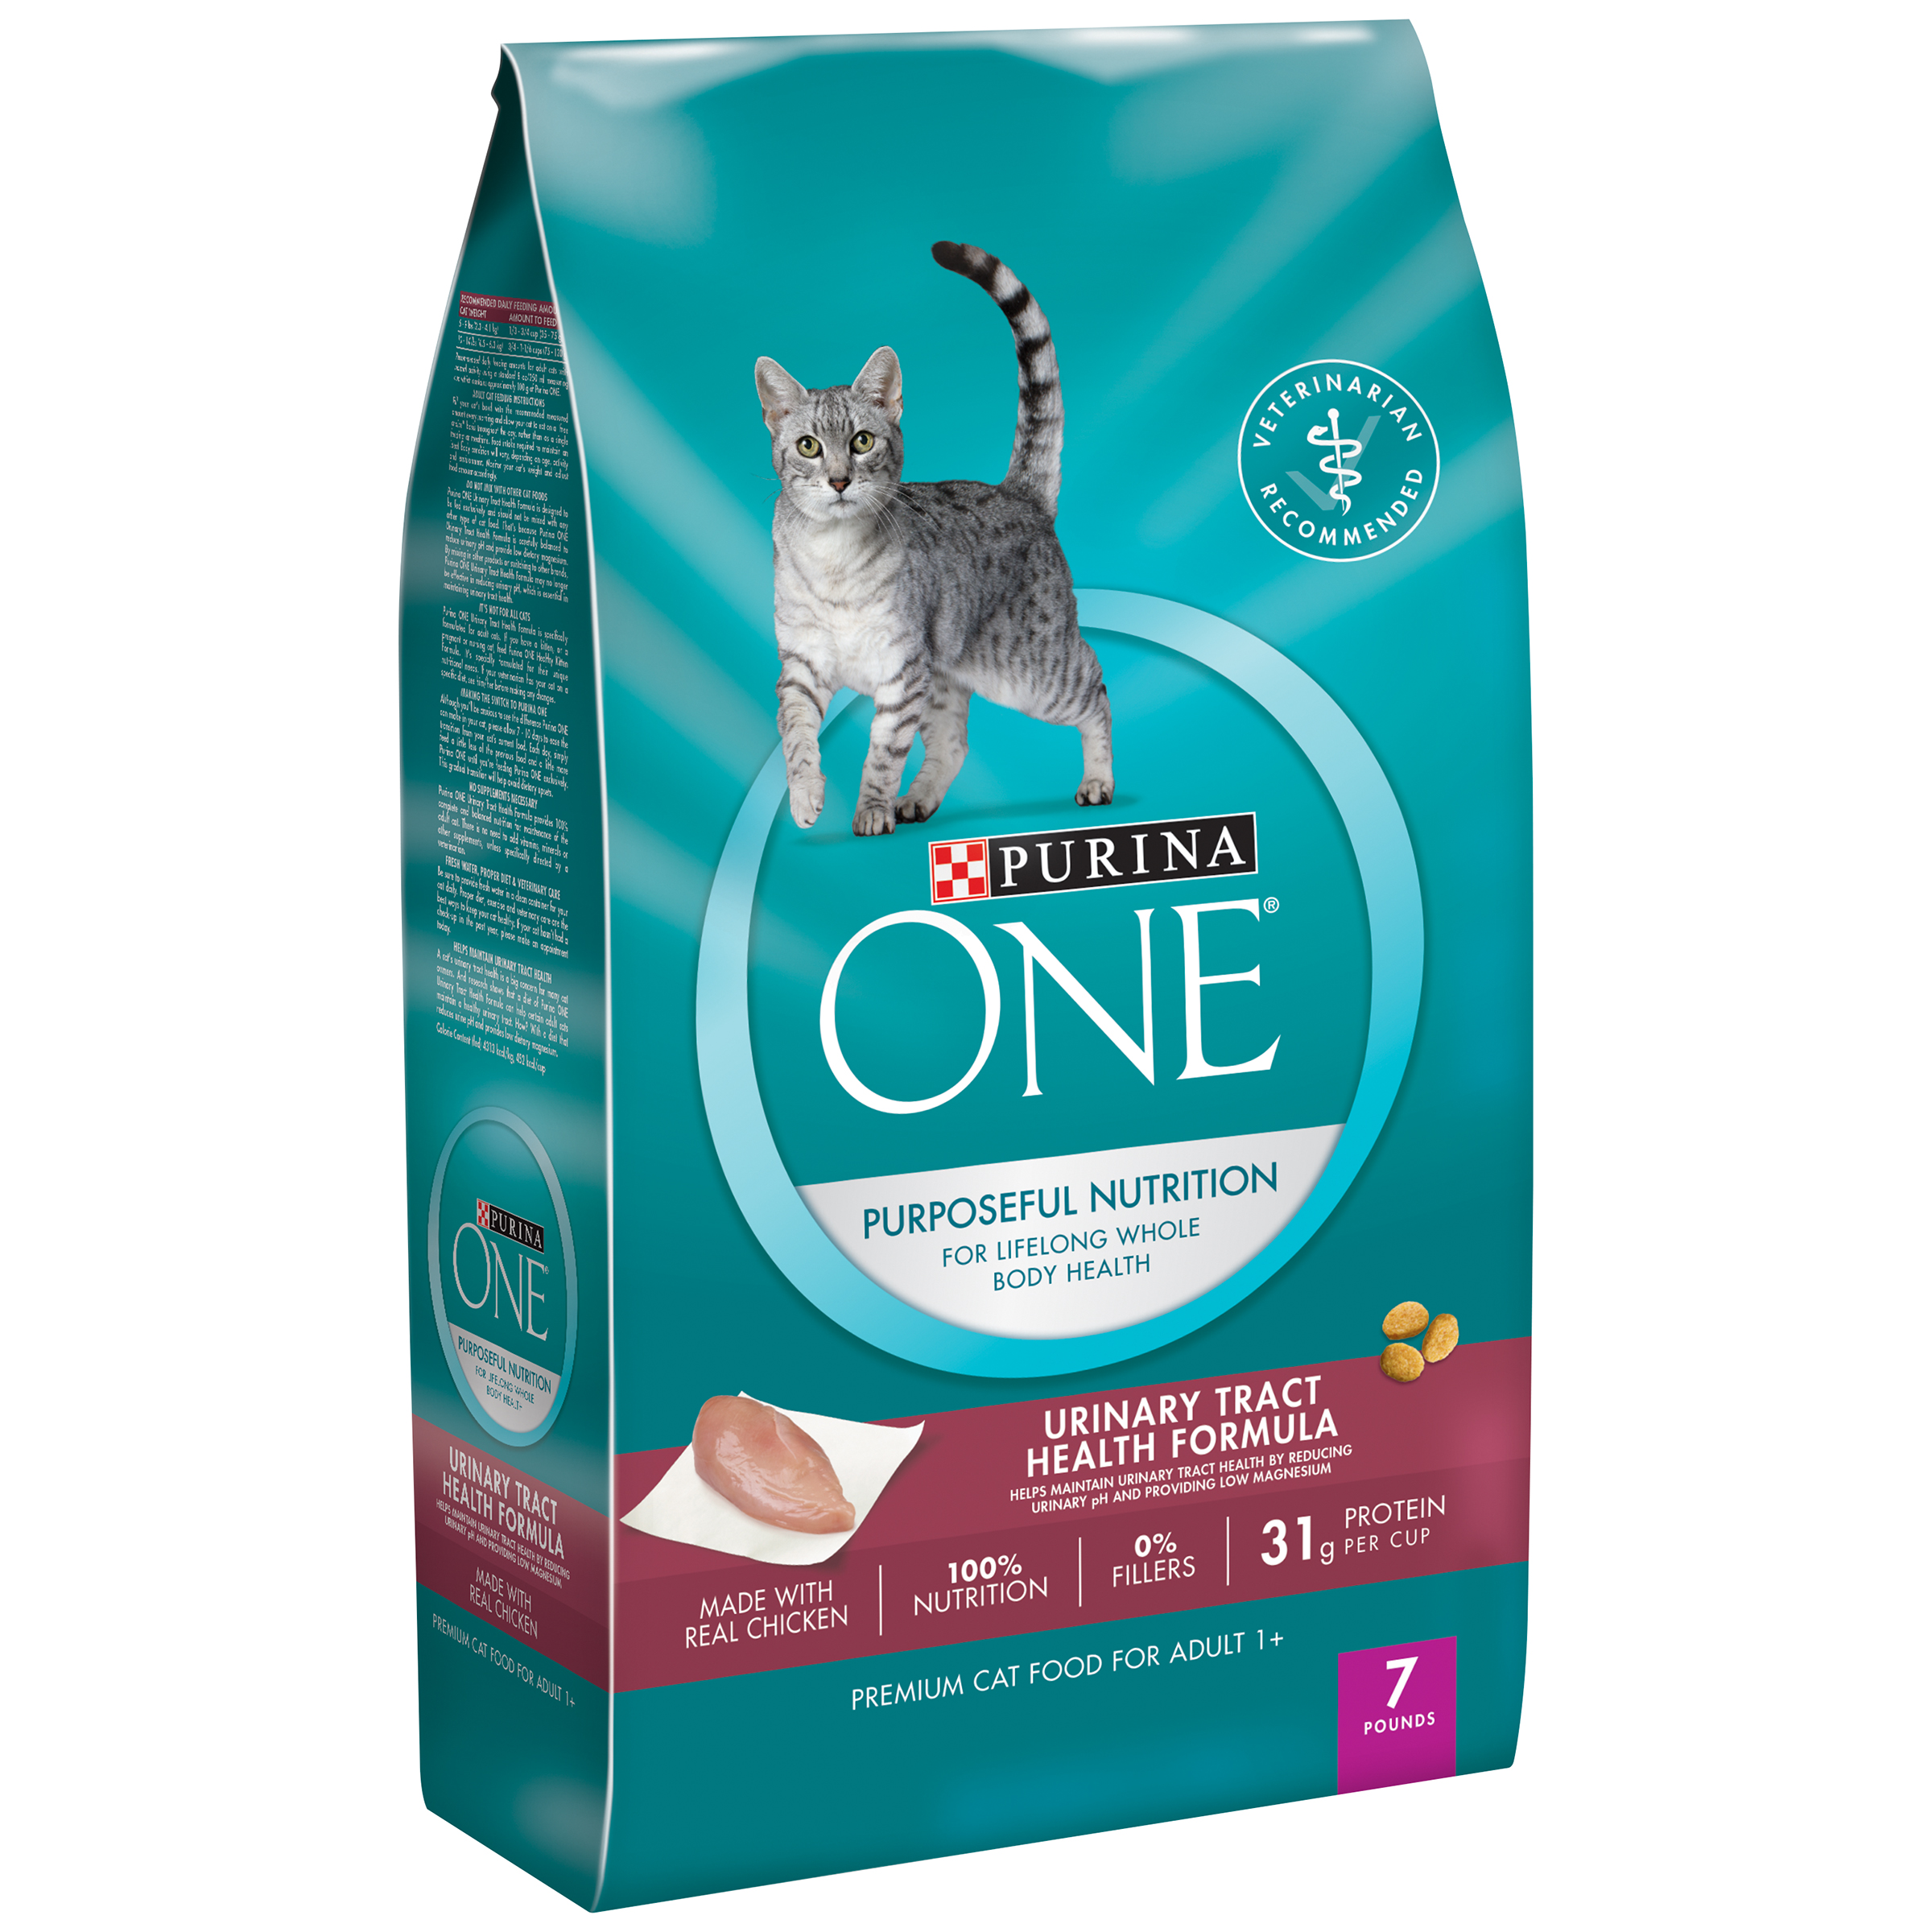 Purina ONE Urinary Tract Health Formula Adult Premium Cat Food 7 lb. Bag